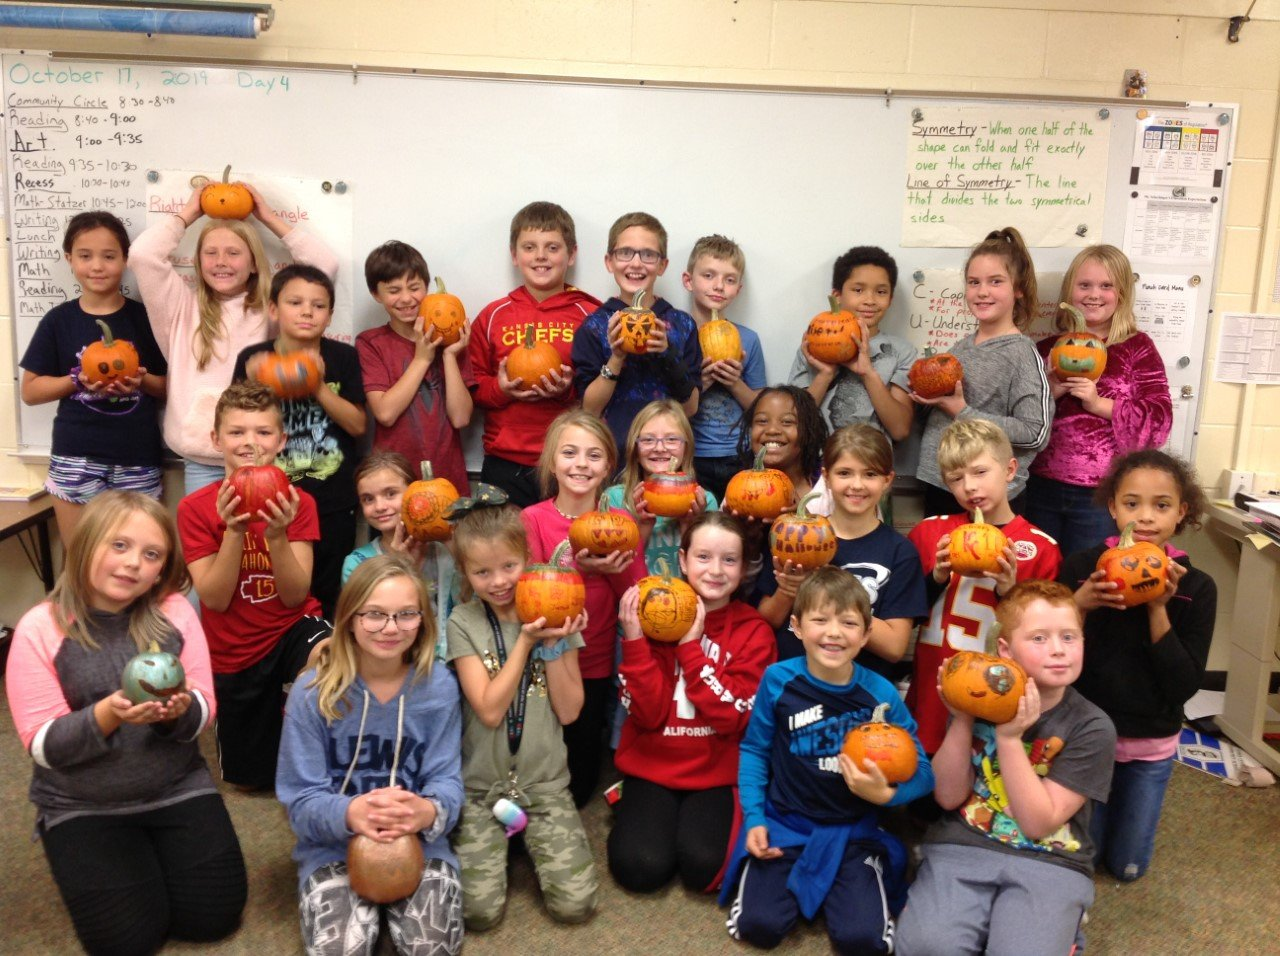 Had a great time decorating pumpkins with my students today! The joy on their faces was priceless.  #InspiringExcellenceLC #LCTitanHill @LewisCentralCSD https://t.co/fuCoYxYlBC